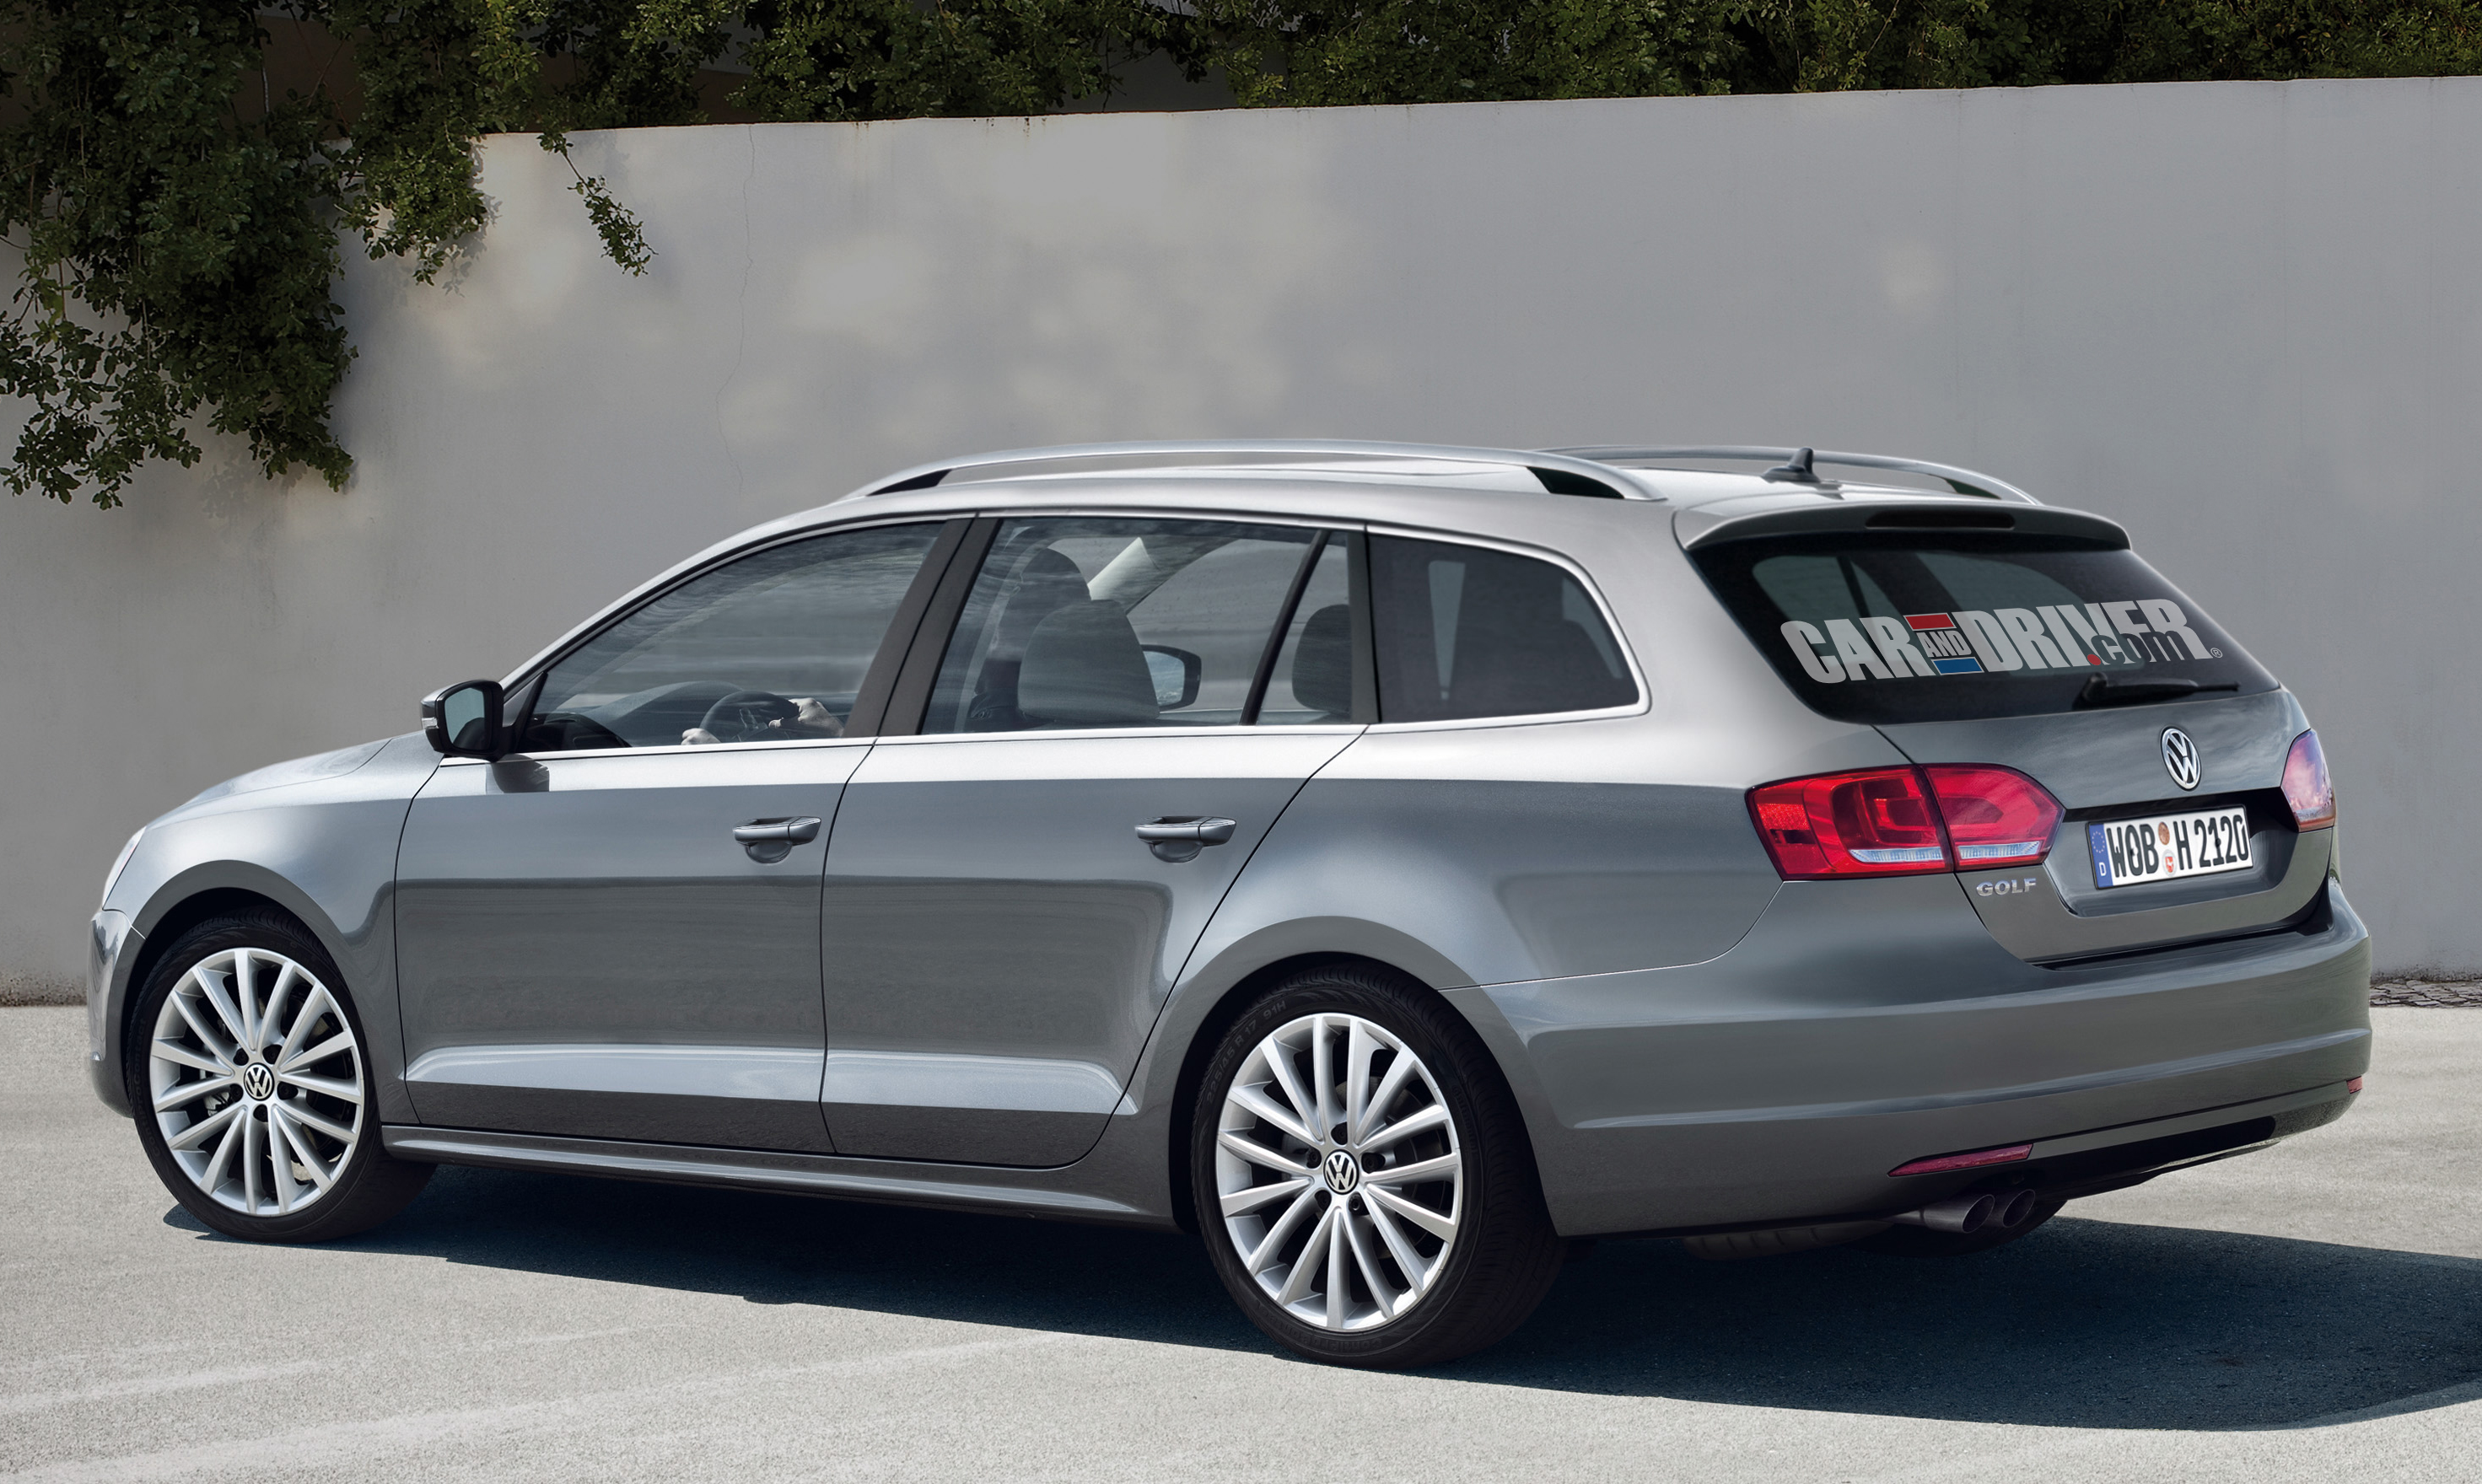 2014 volkswagen jetta iv wagon pictures information and specs auto. Black Bedroom Furniture Sets. Home Design Ideas